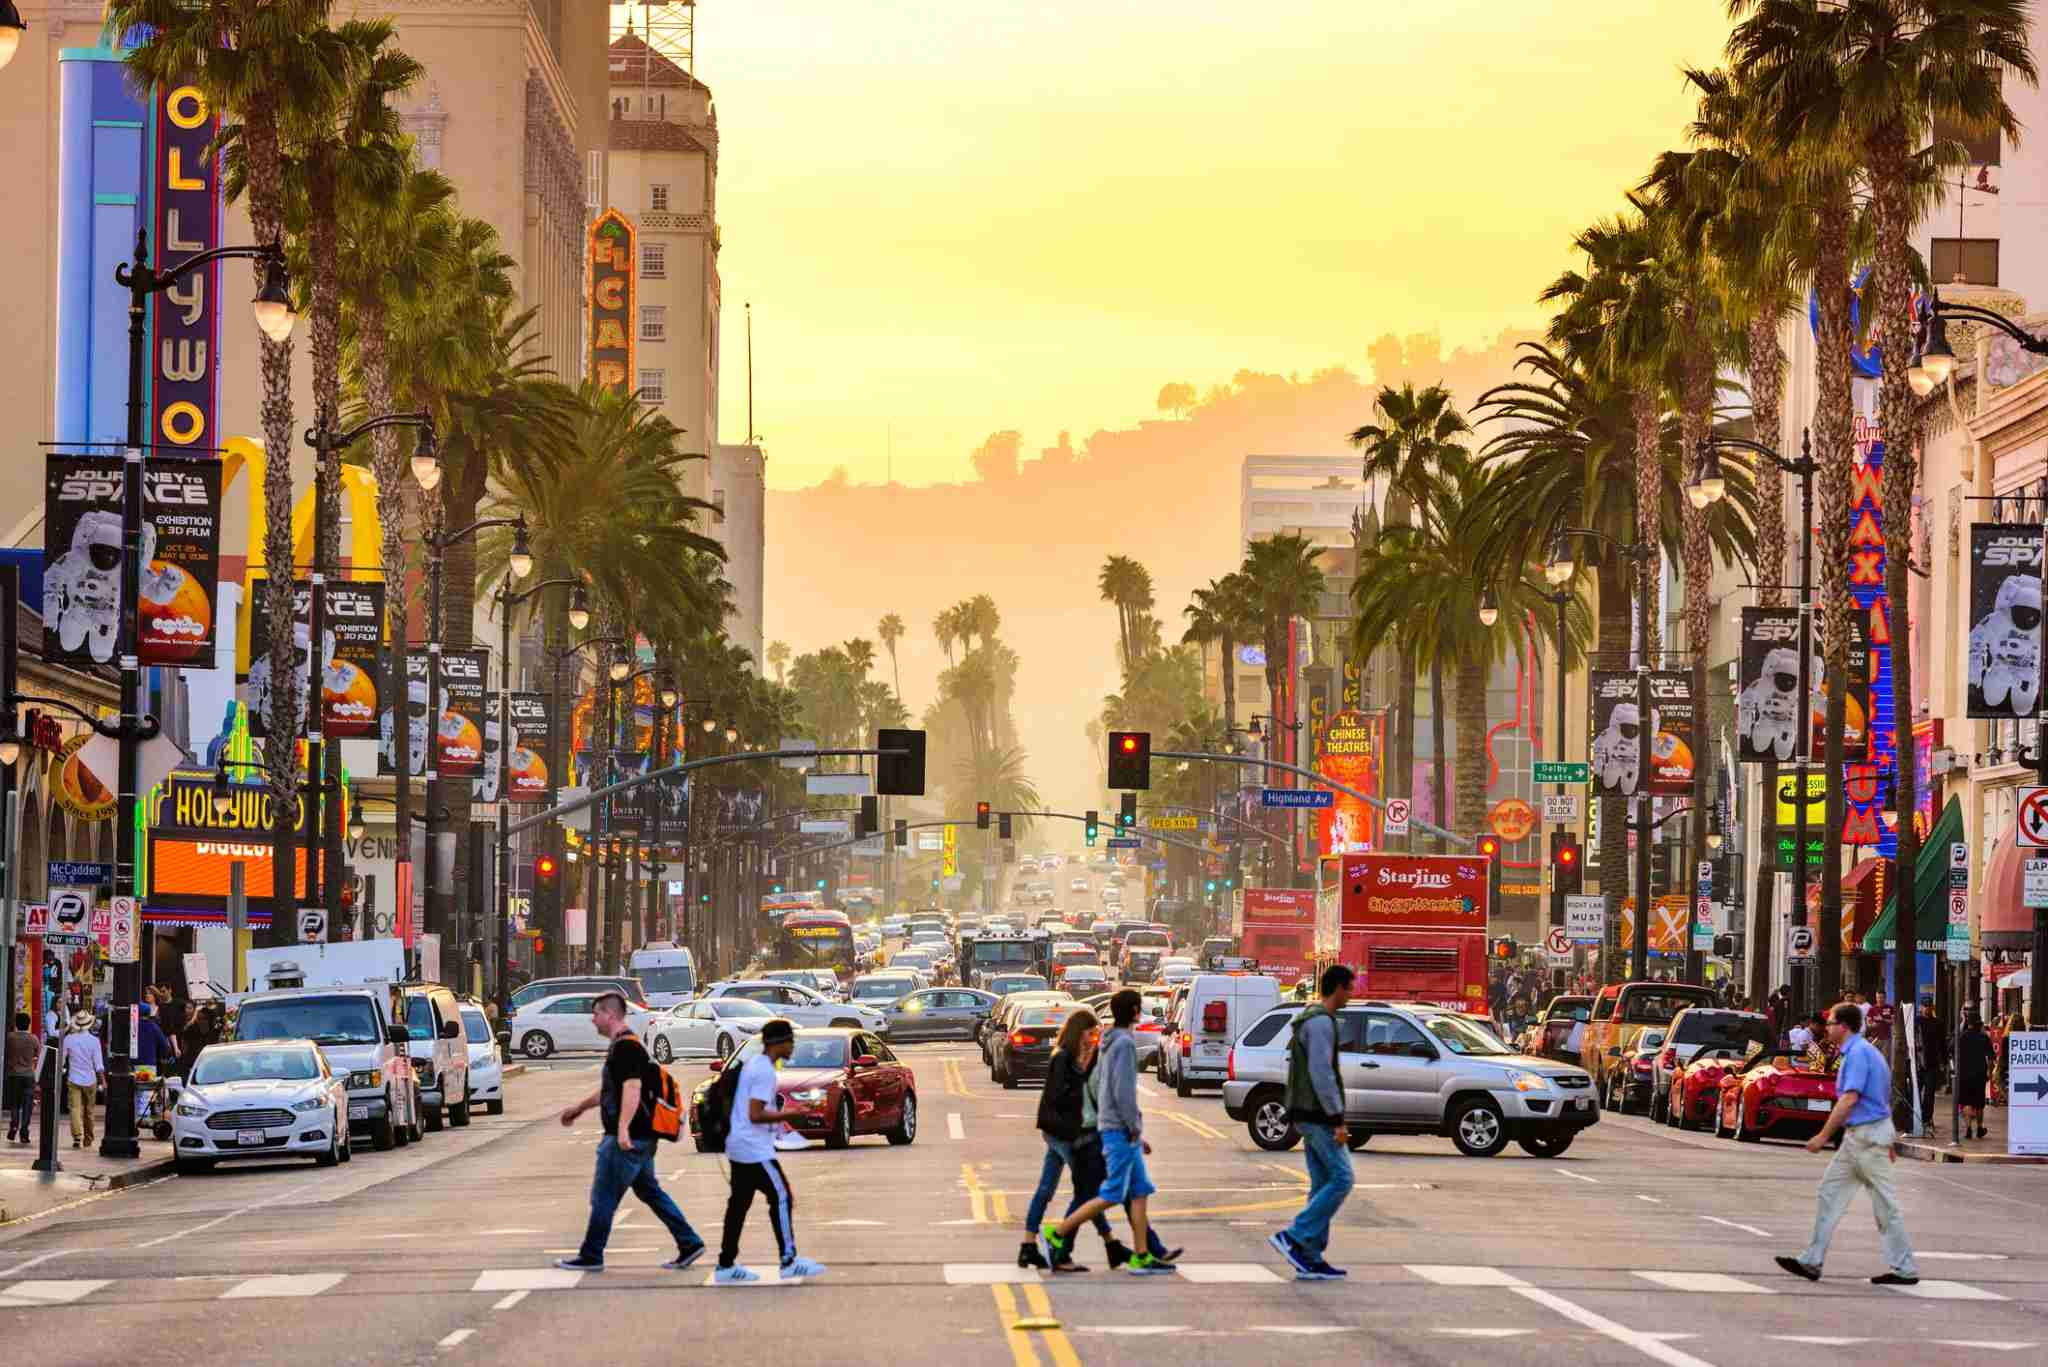 The theaters, tourist attractions and people watching are endless along Hollywood Boulevard. (photo credit: SeanPavonePhoto)